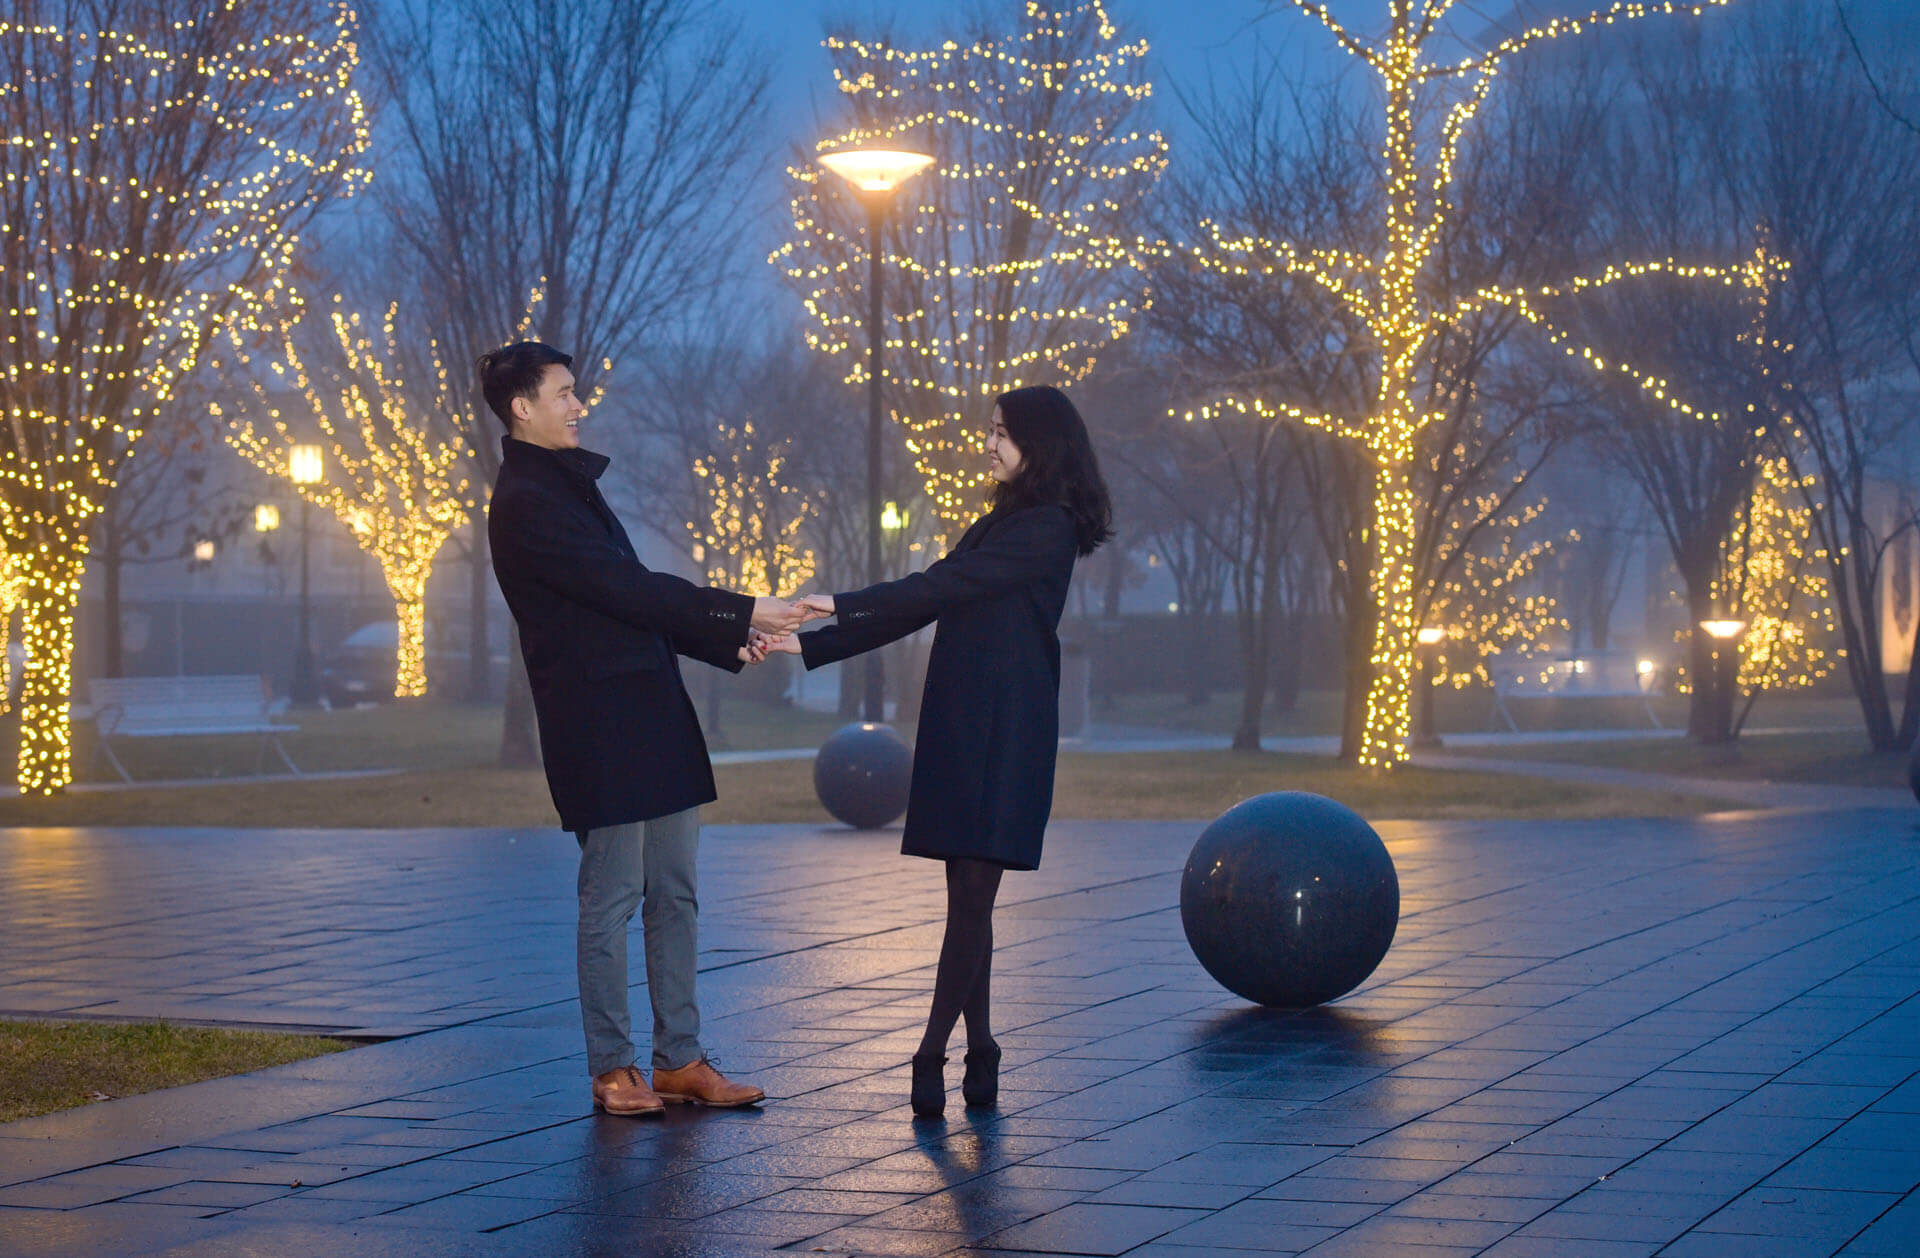 Epic Wedding portrait showing an engaged couple on a misty night in Birmingham, Michigan after their proposal.